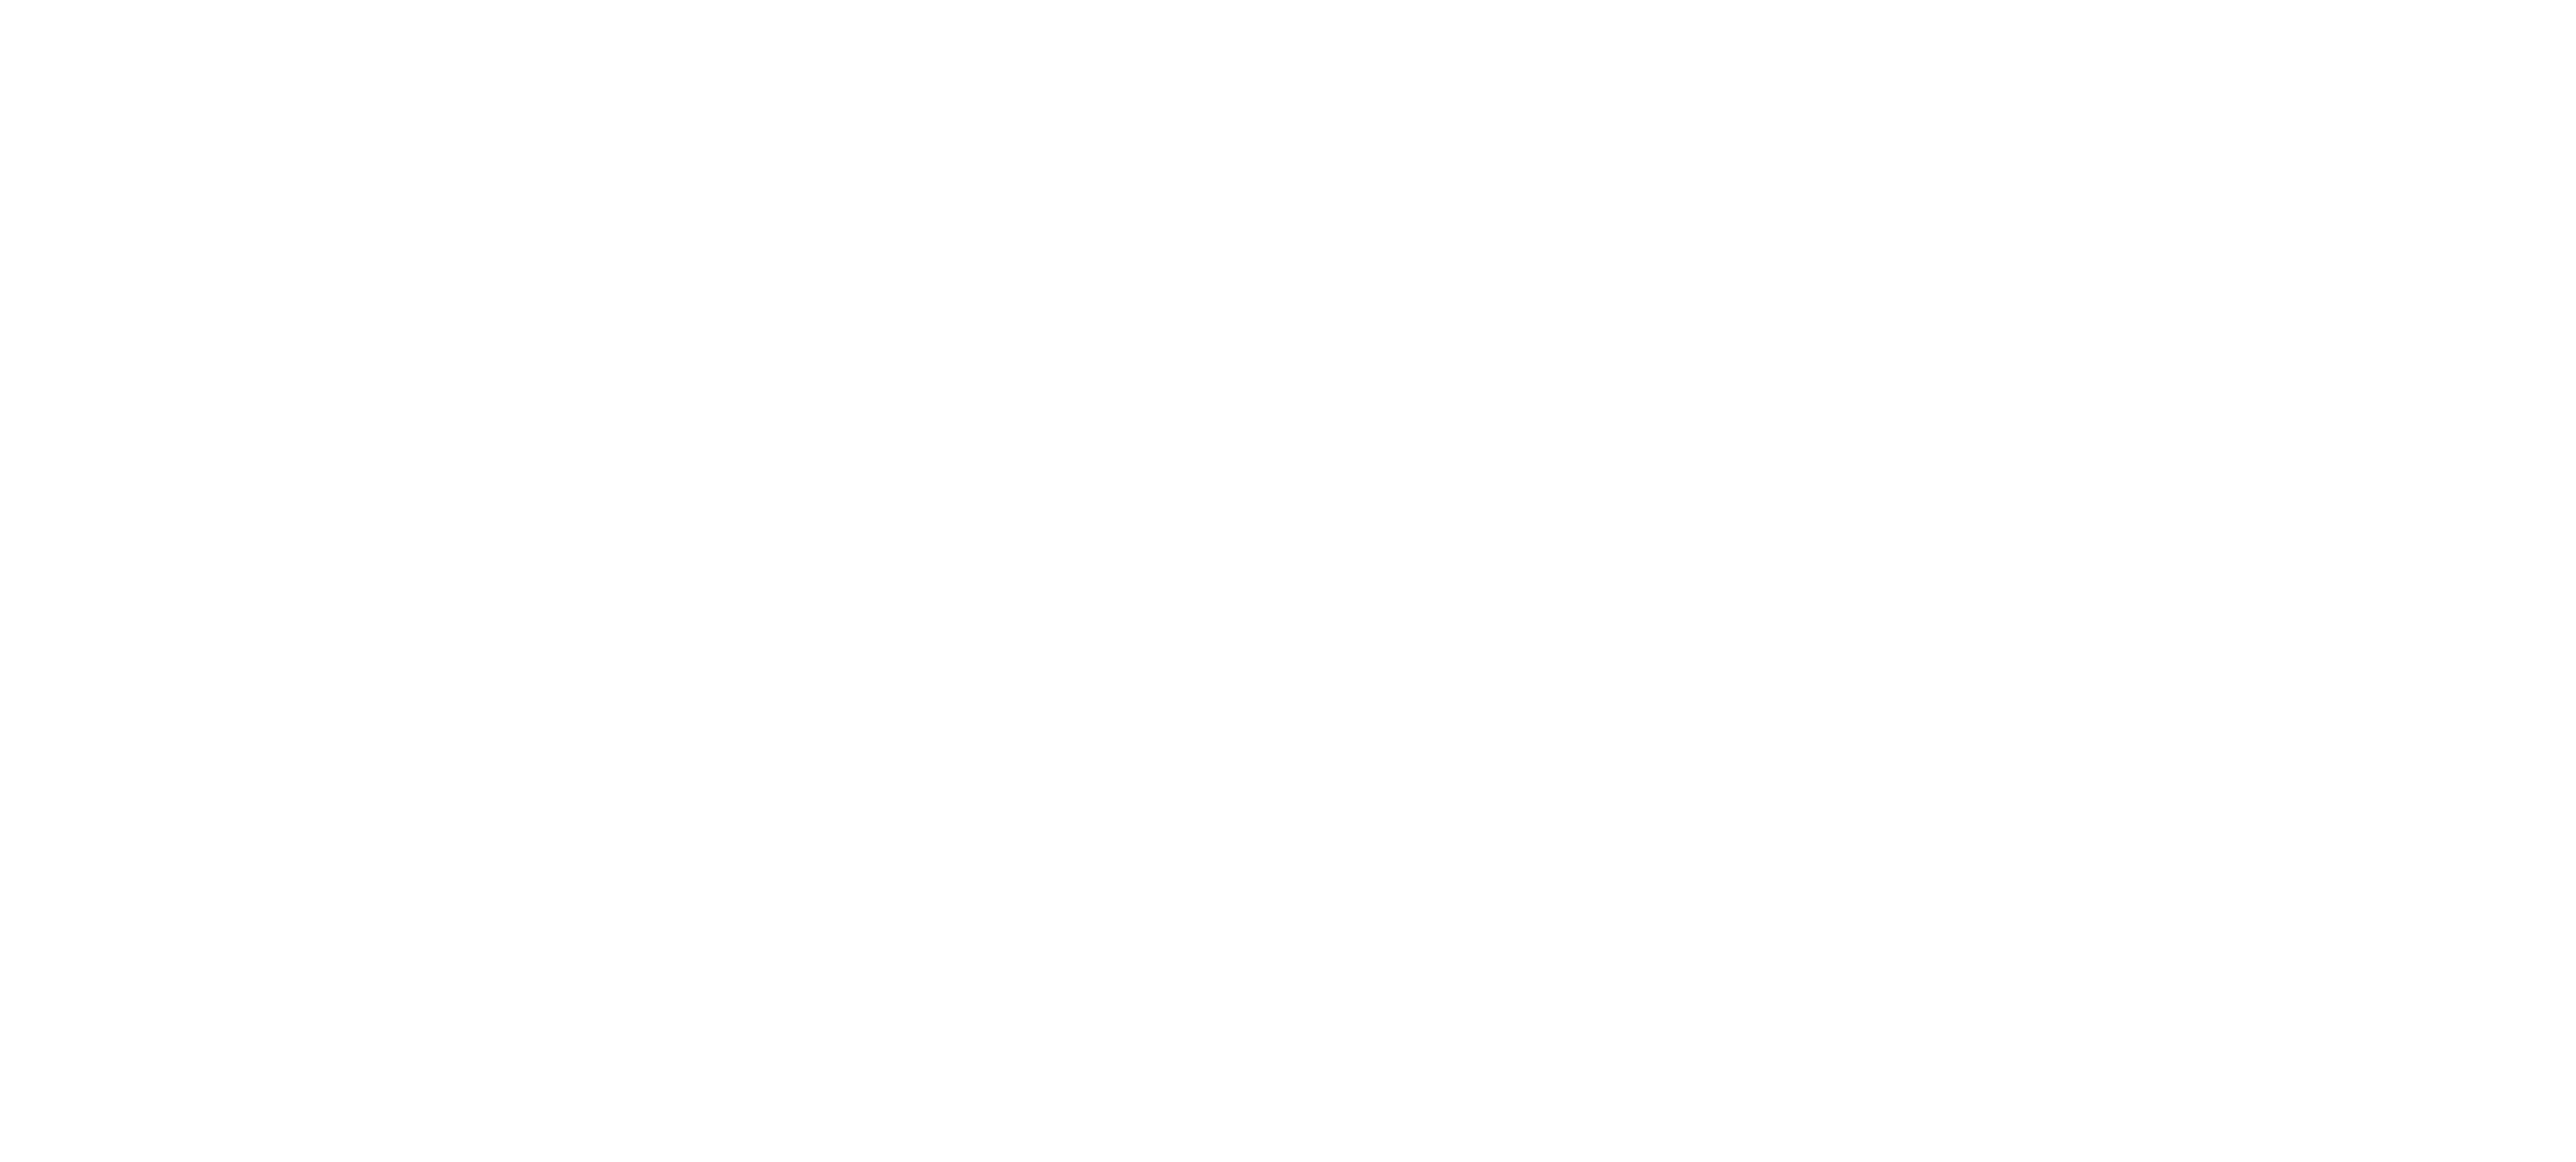 Summit Mountain Chef's Catering logo